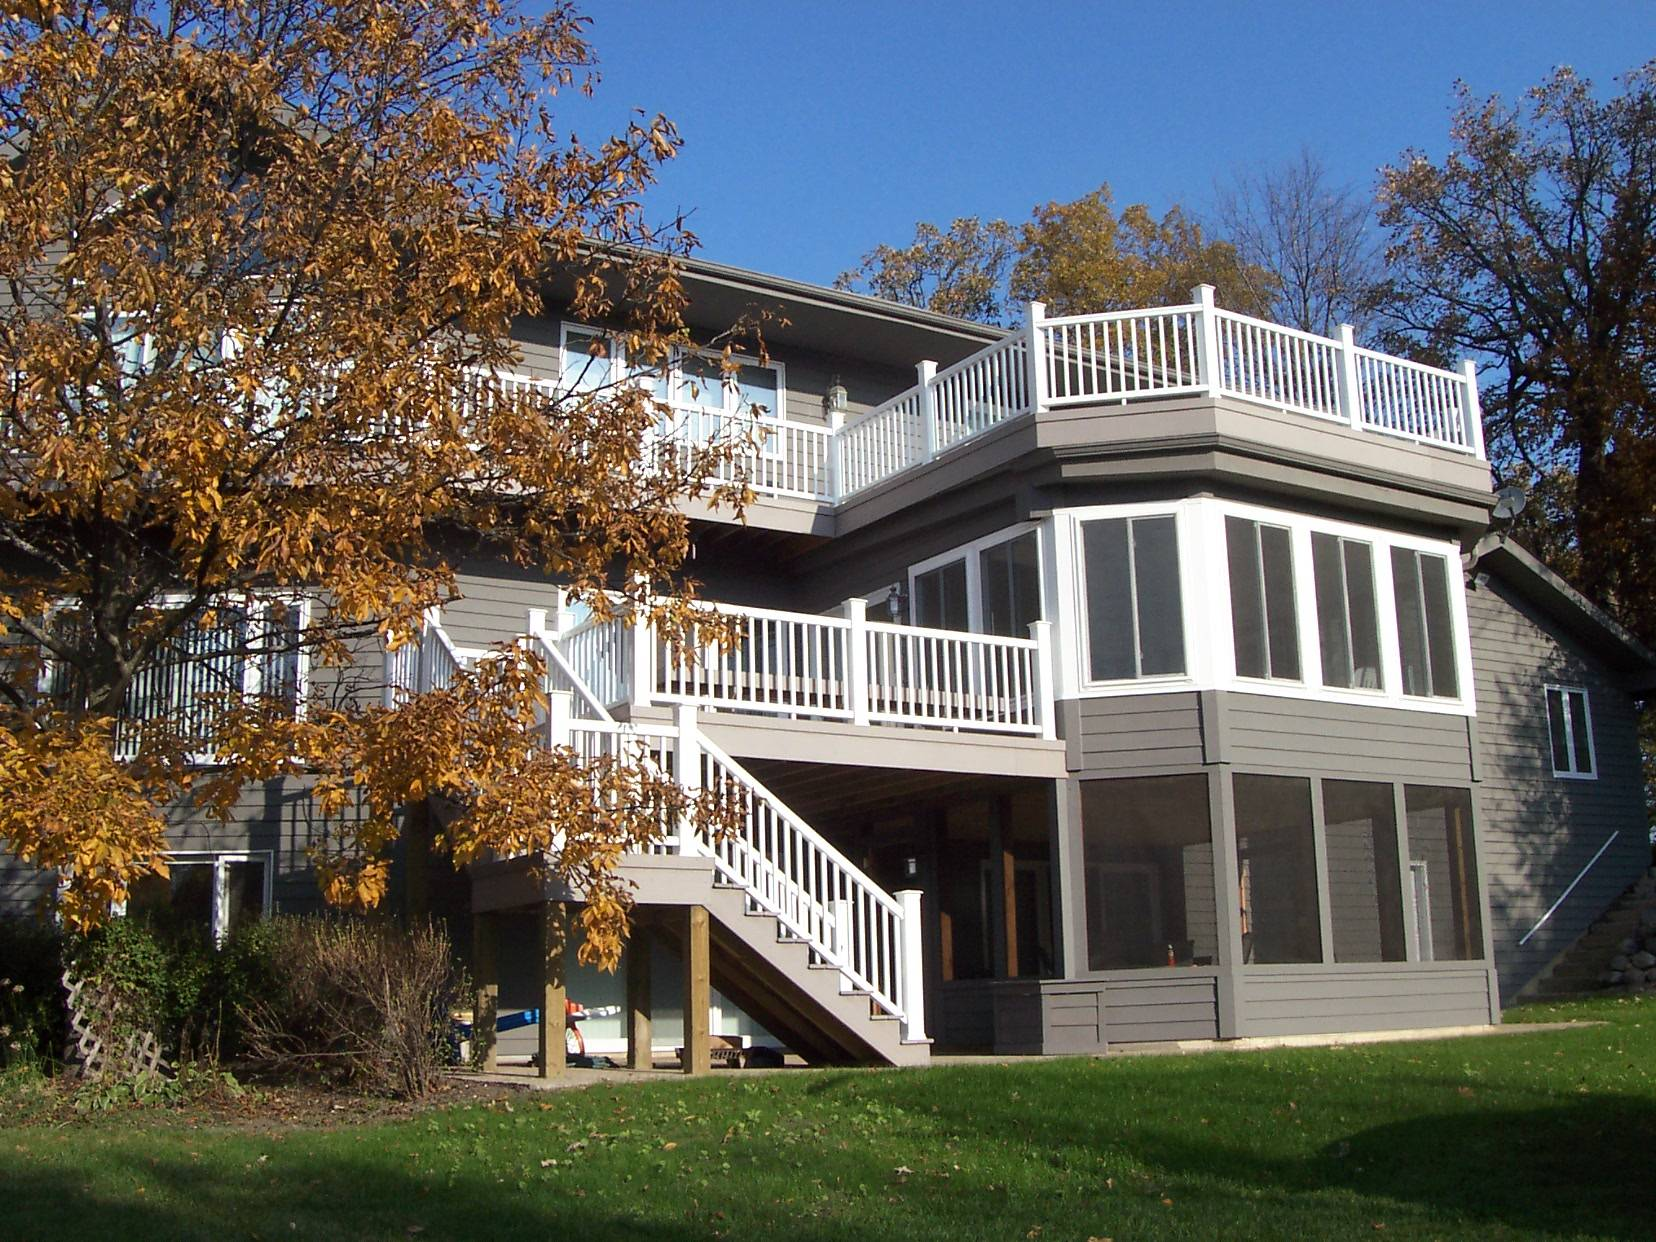 Two story deck design ideas by archadeck st louis decks Two story sunroom